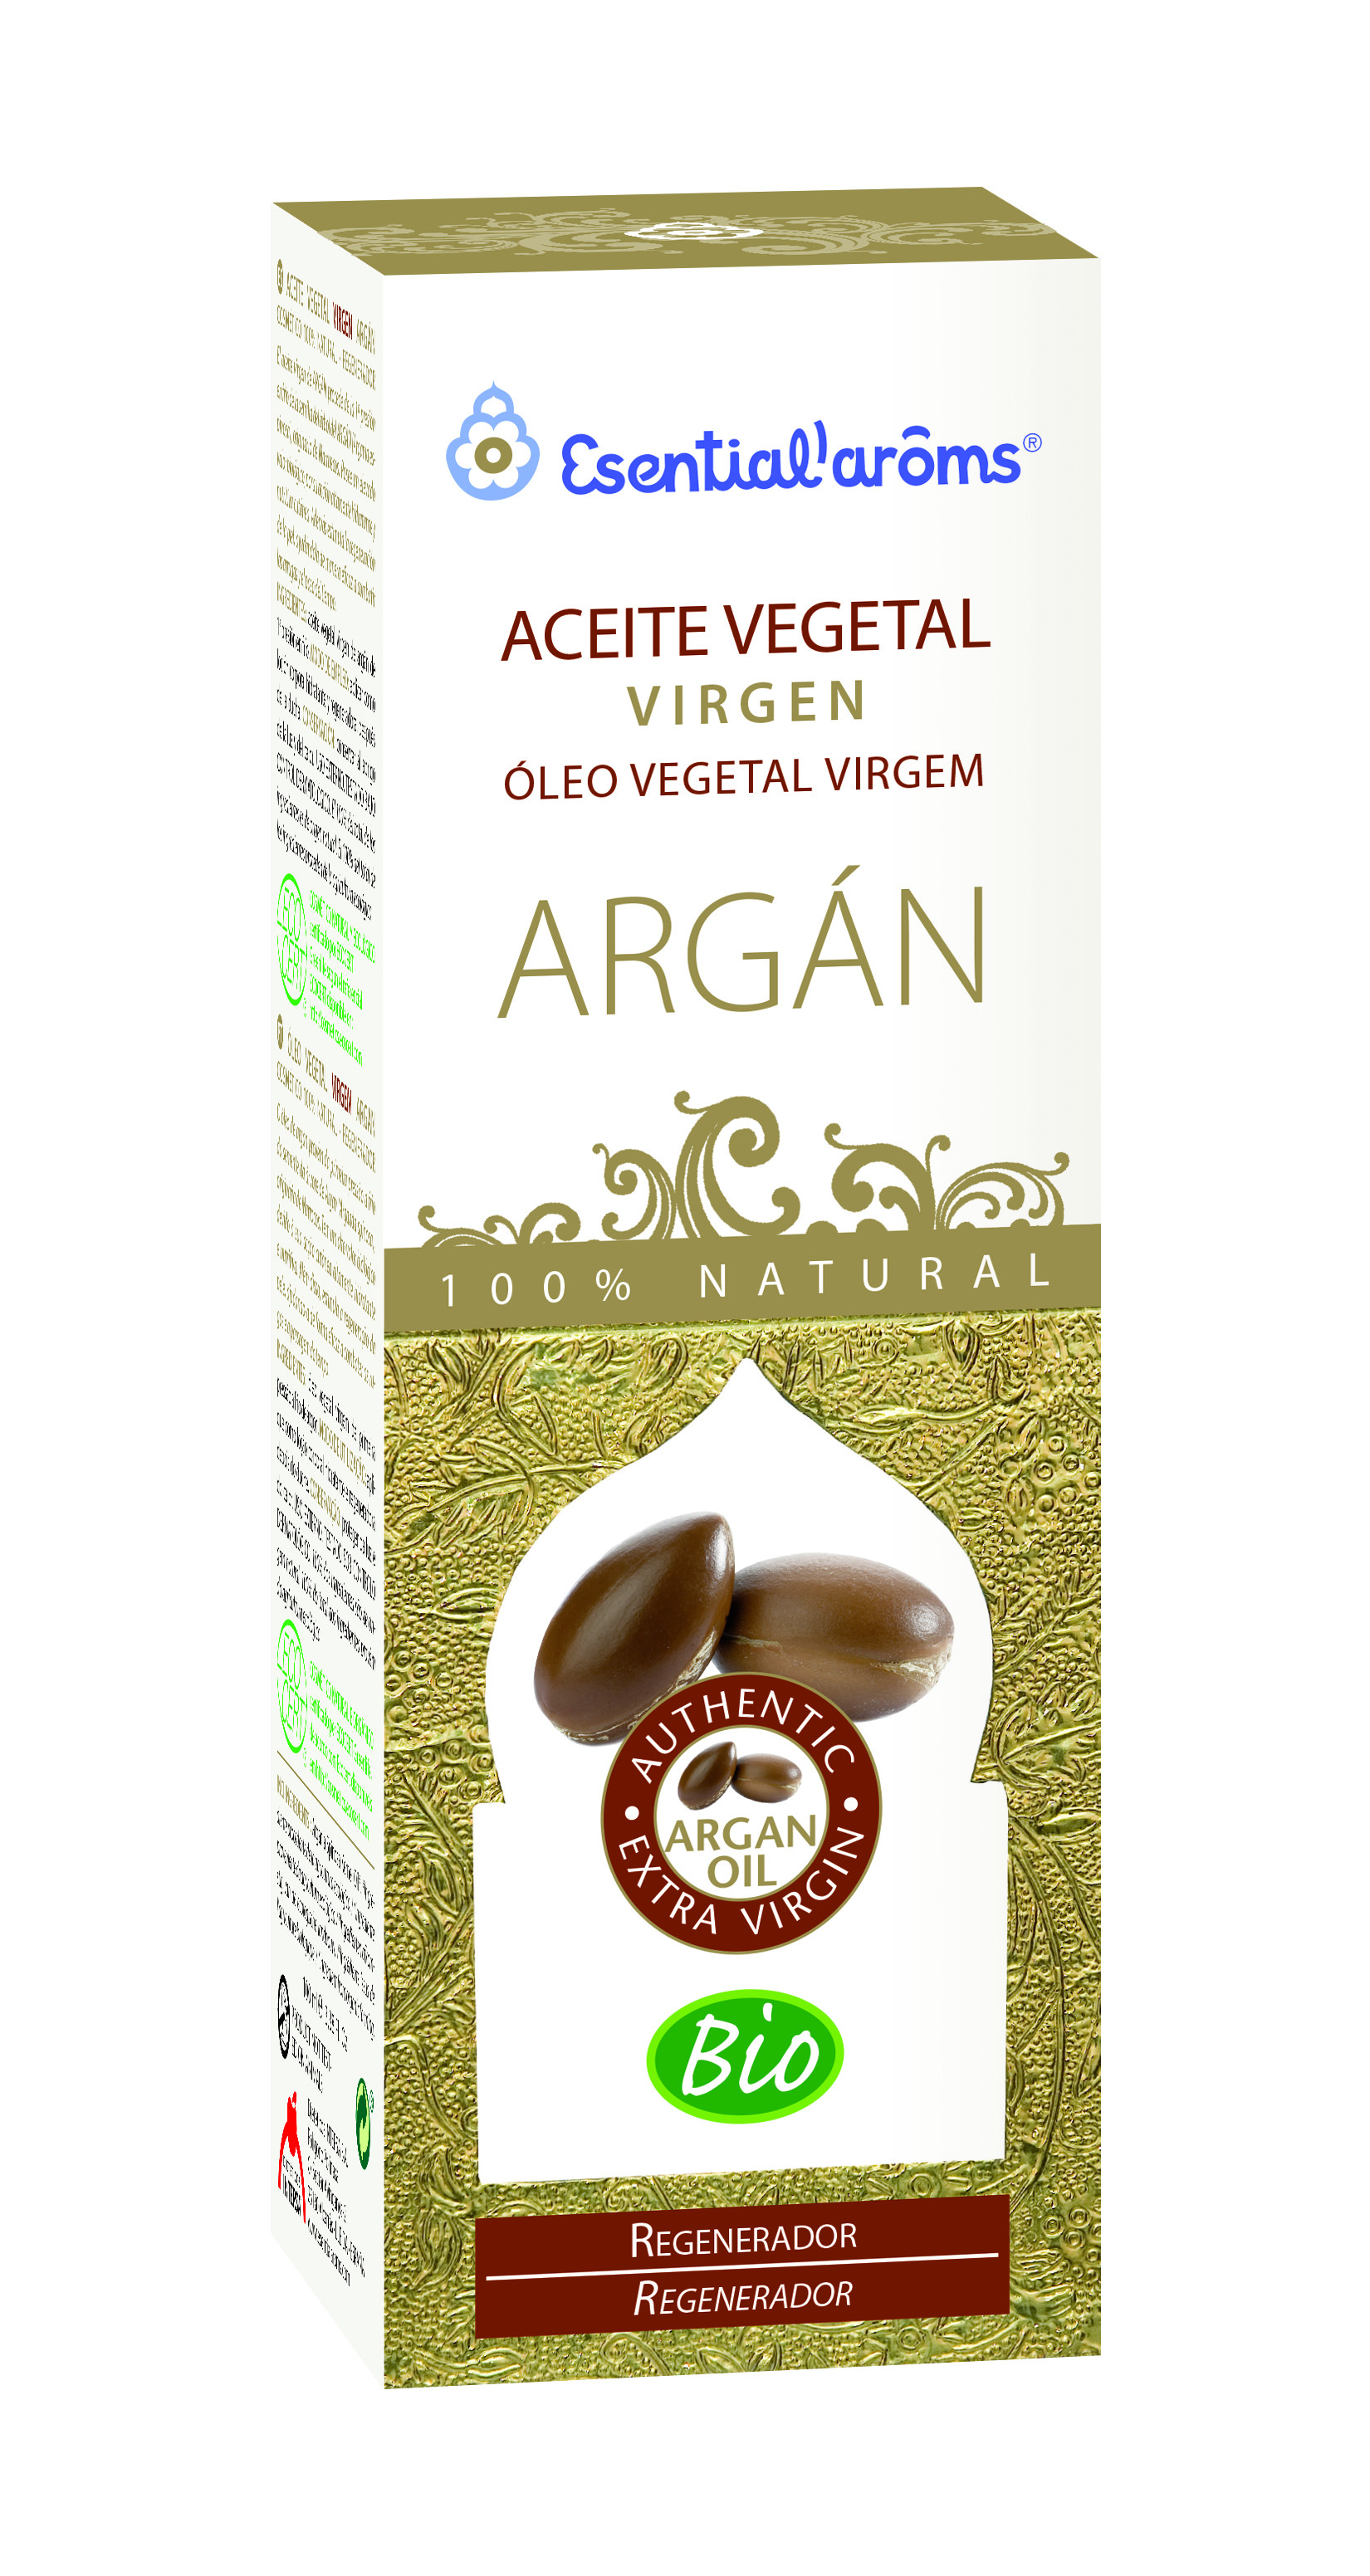 Esential Aroms Aceite Vegetal Argan 100 Ml